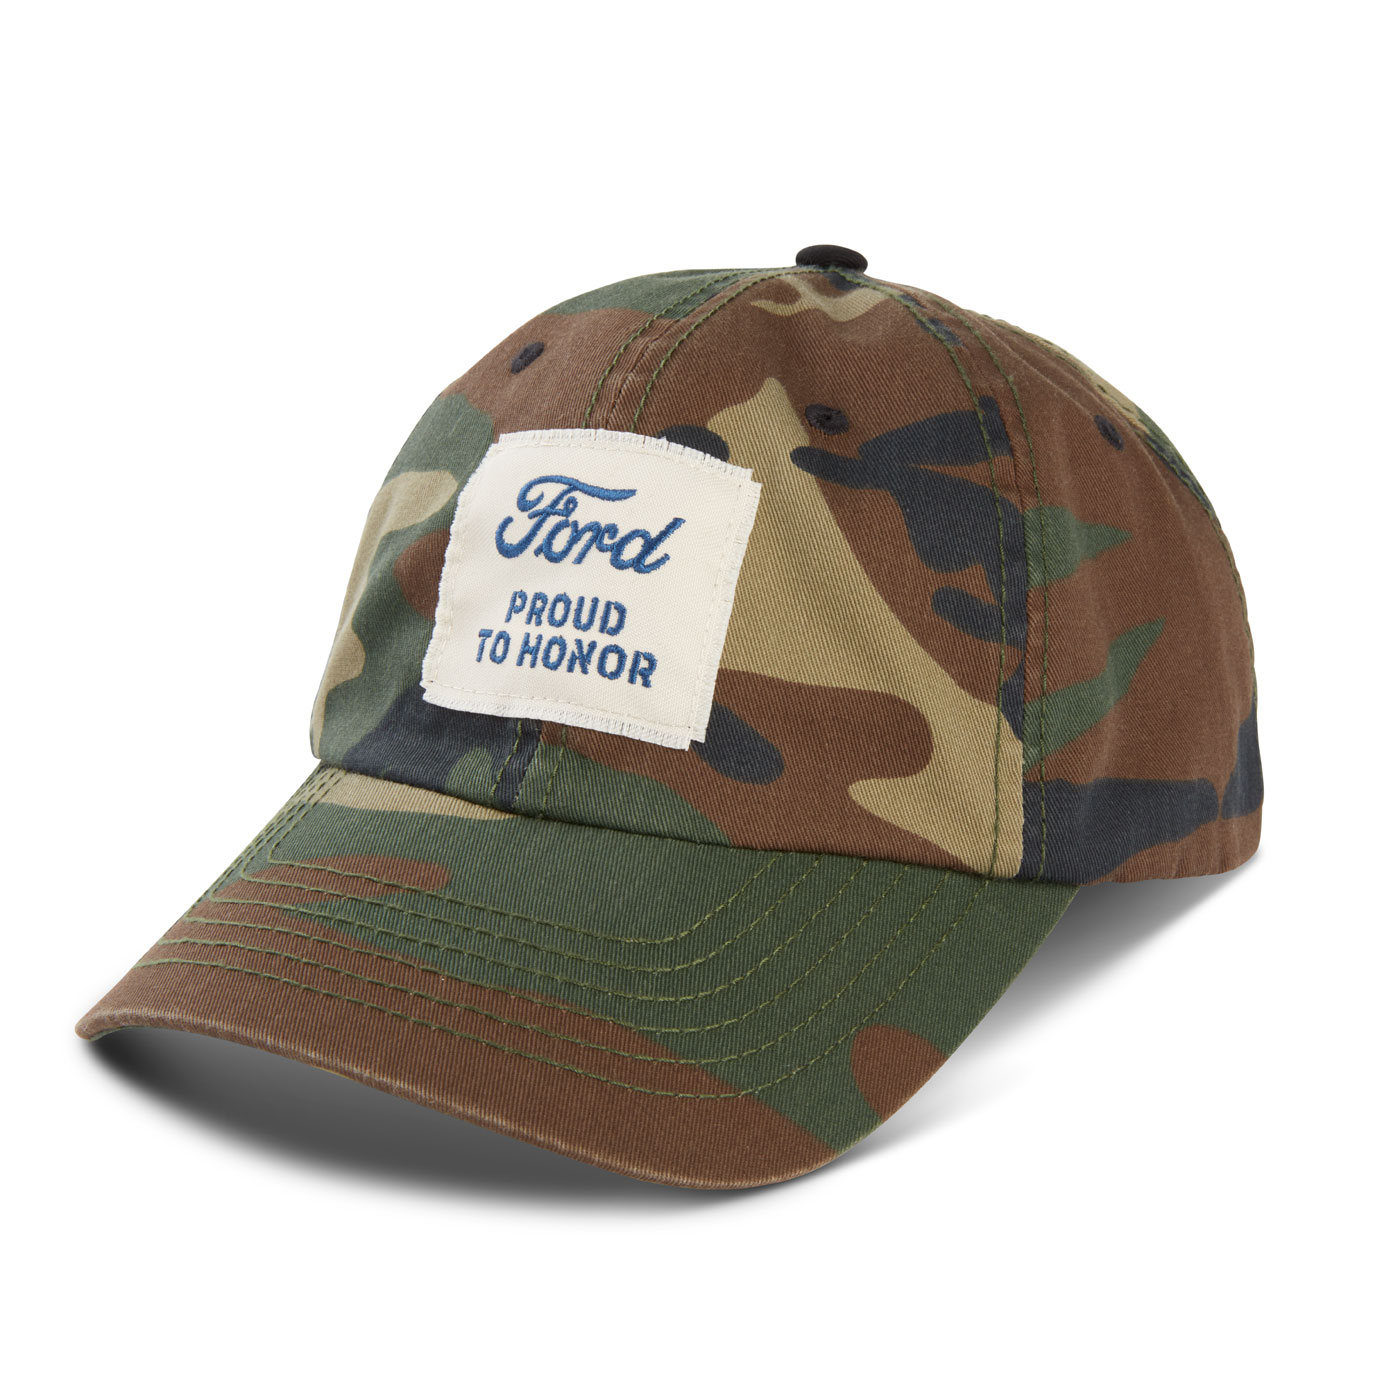 Ford Proud to Honor hat image